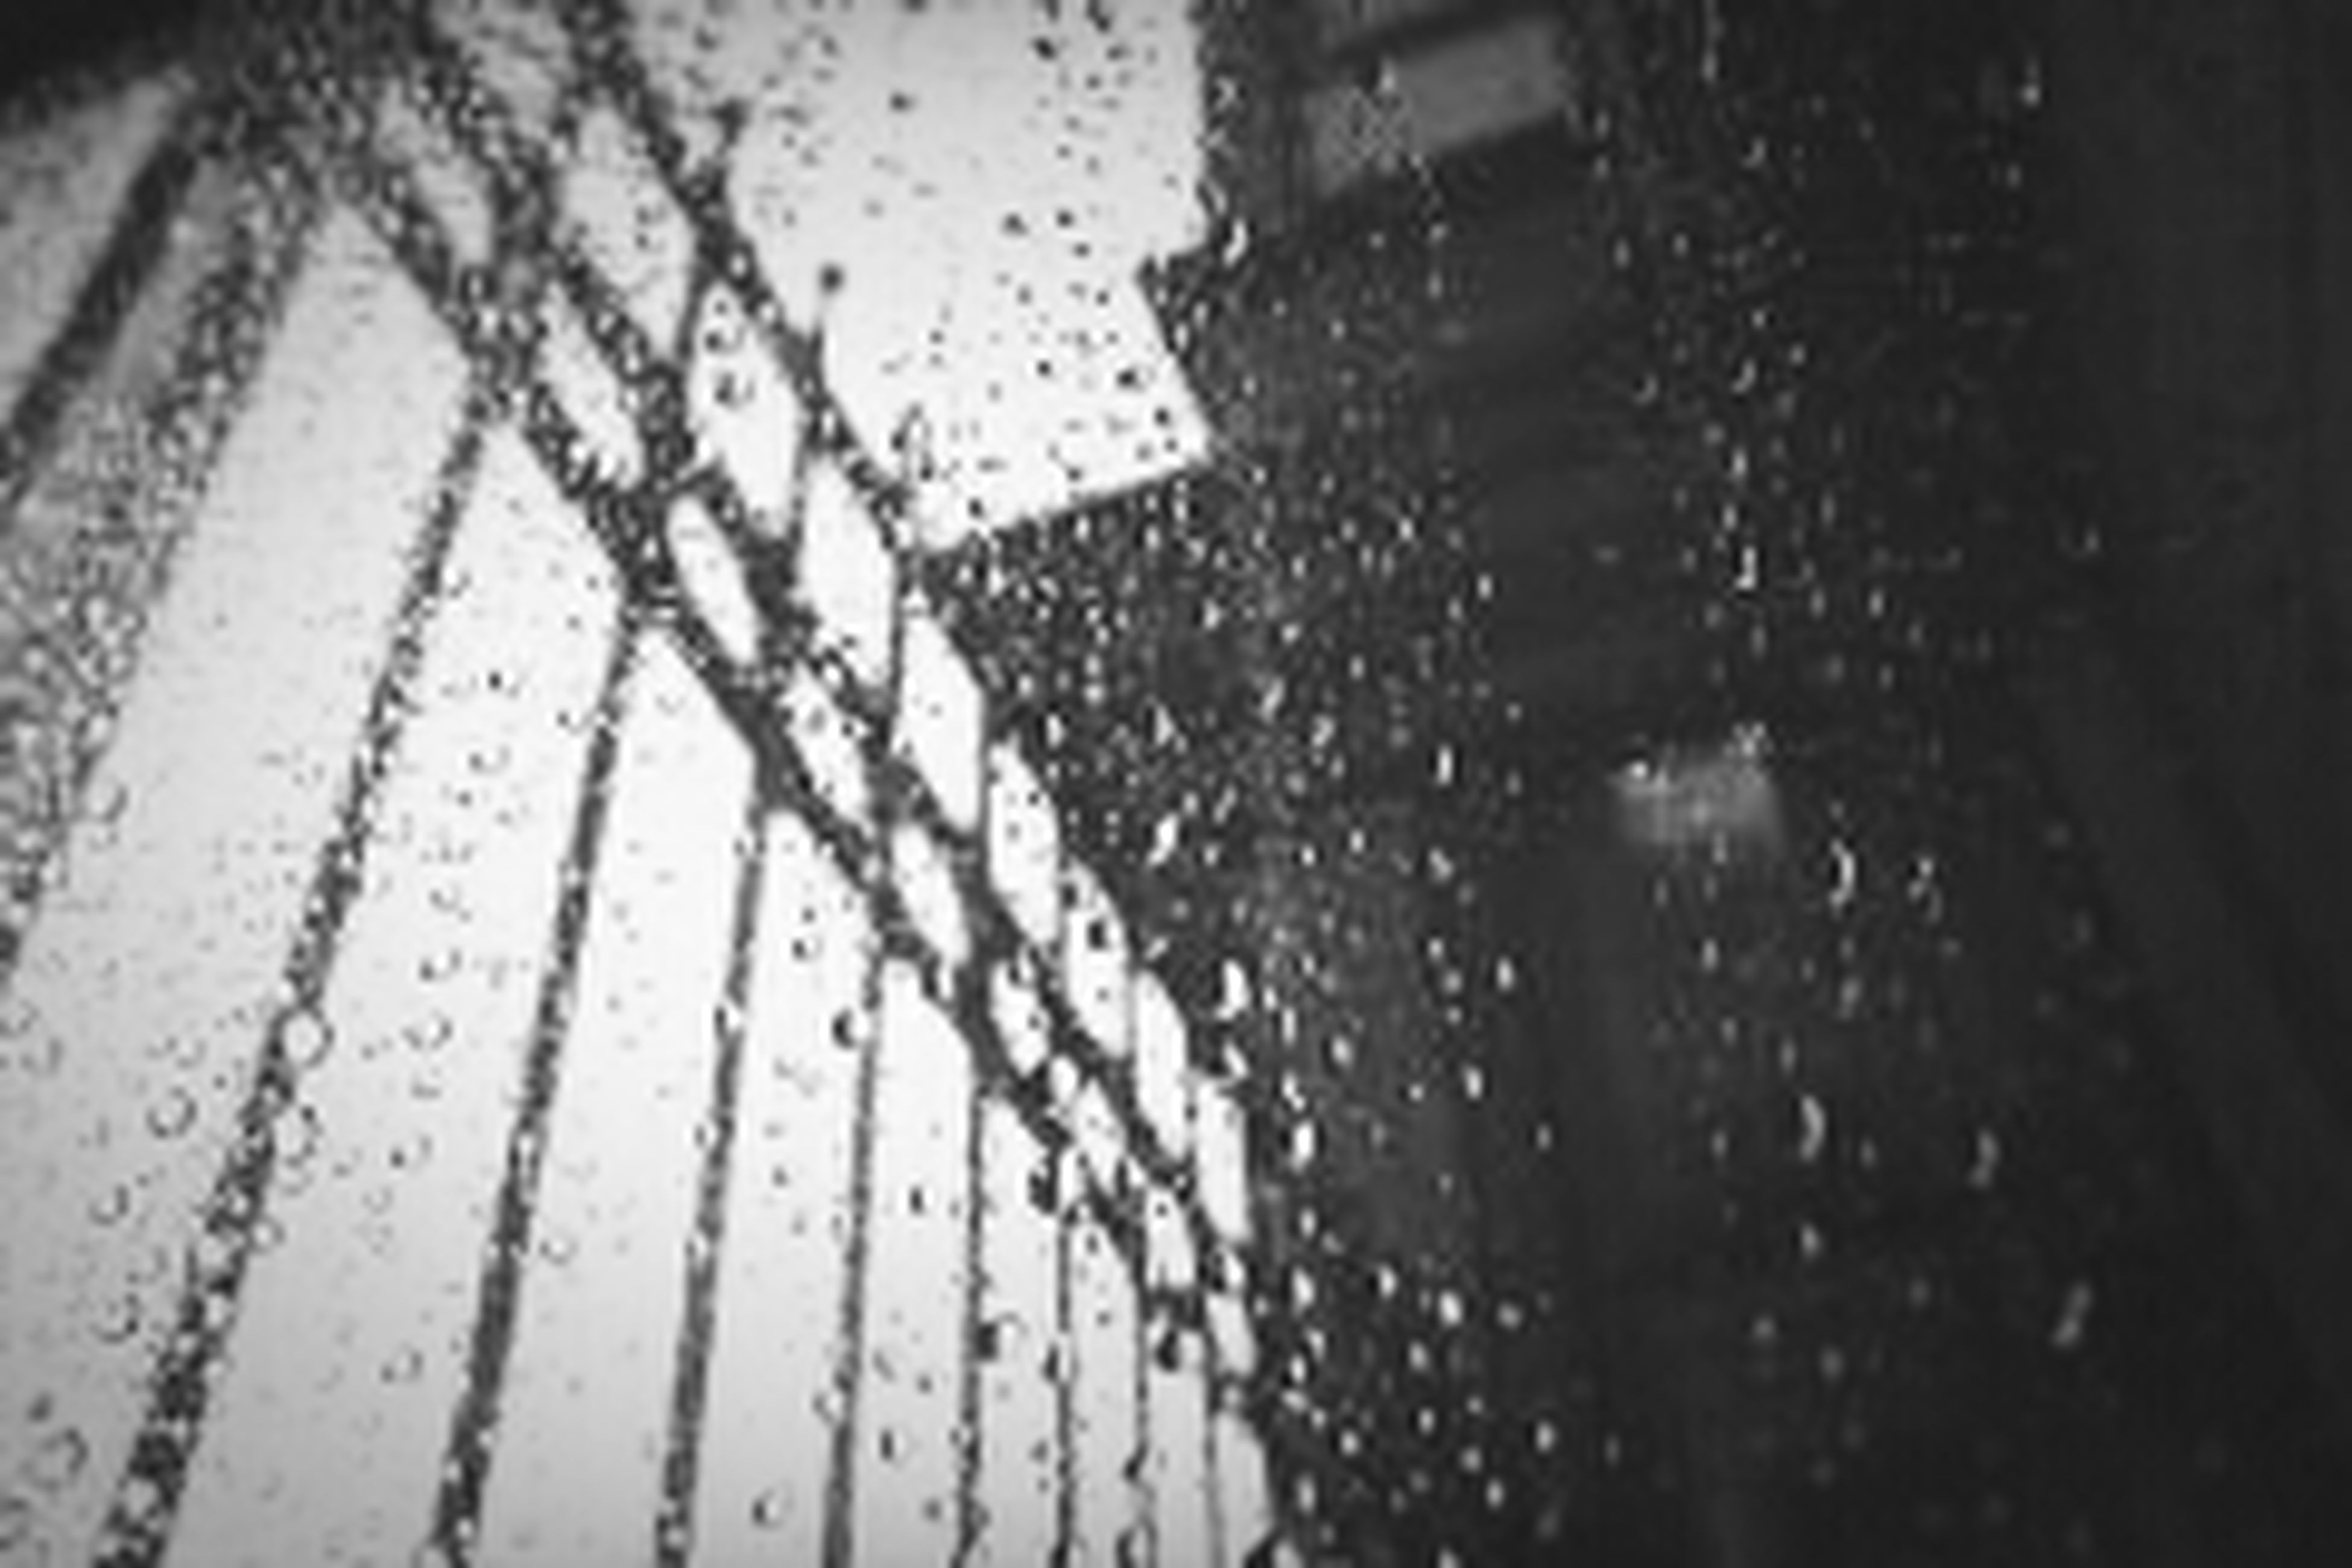 wet, drop, rain, water, close-up, indoors, raindrop, window, focus on foreground, selective focus, season, monsoon, glass - material, built structure, street, full frame, backgrounds, weather, no people, metal